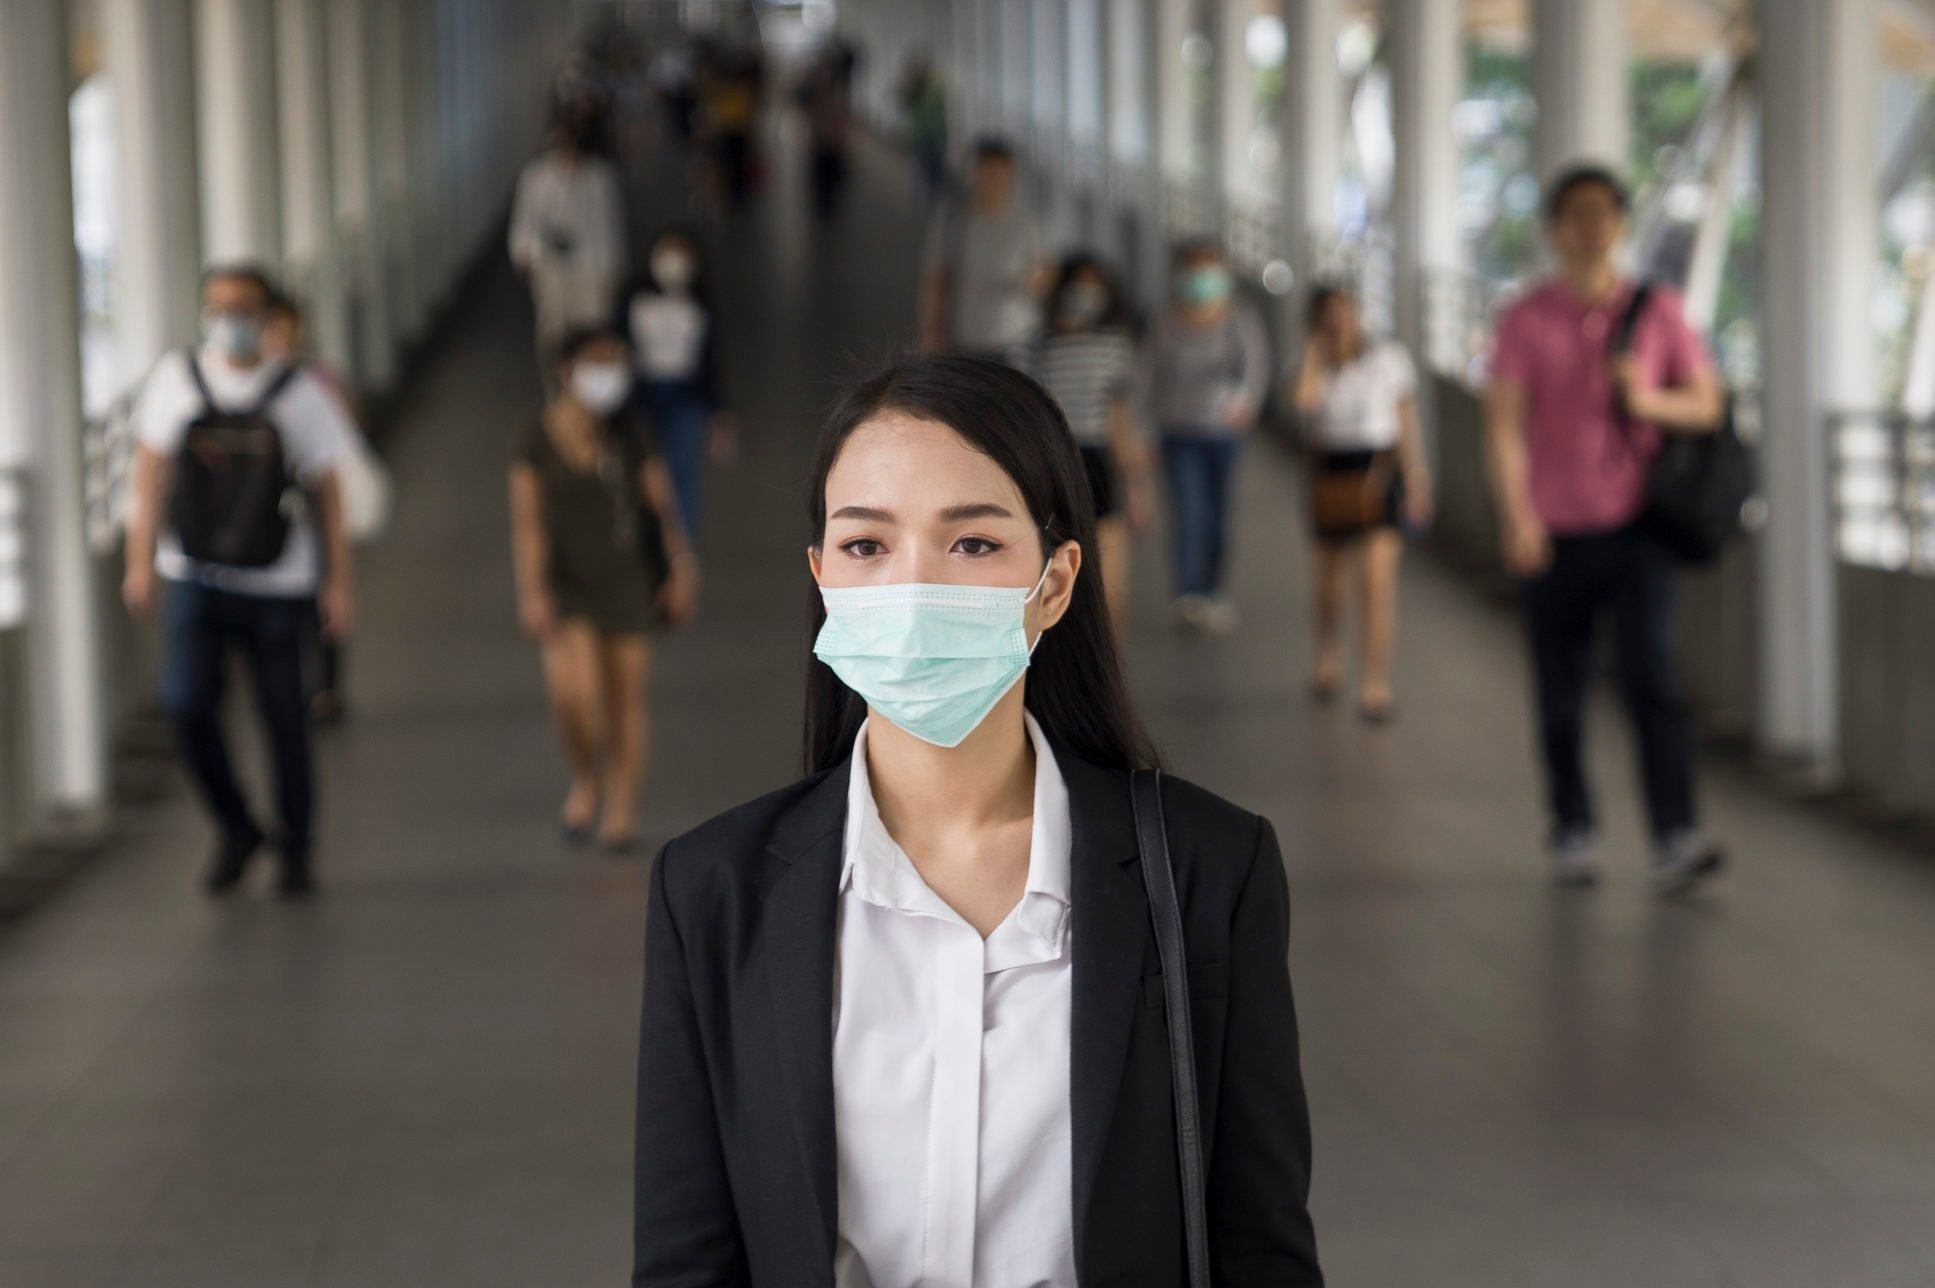 Asian woman with protective face mask in the urban bridge in city against crowd of people